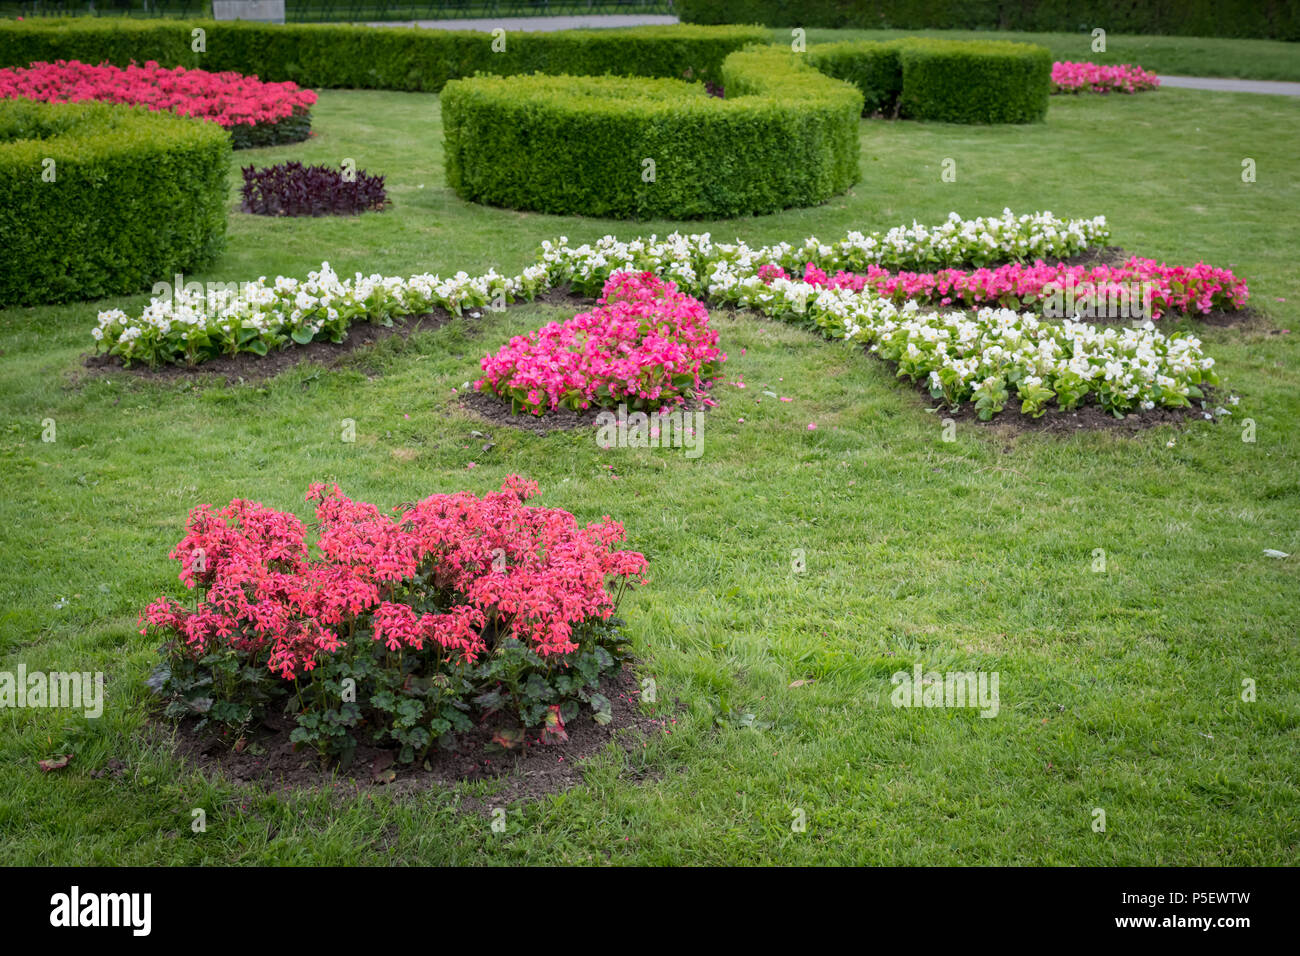 Flowerbed with various flowers, hedges and green meadow in Volksgarten, Vienna (Austria) - Stock Image